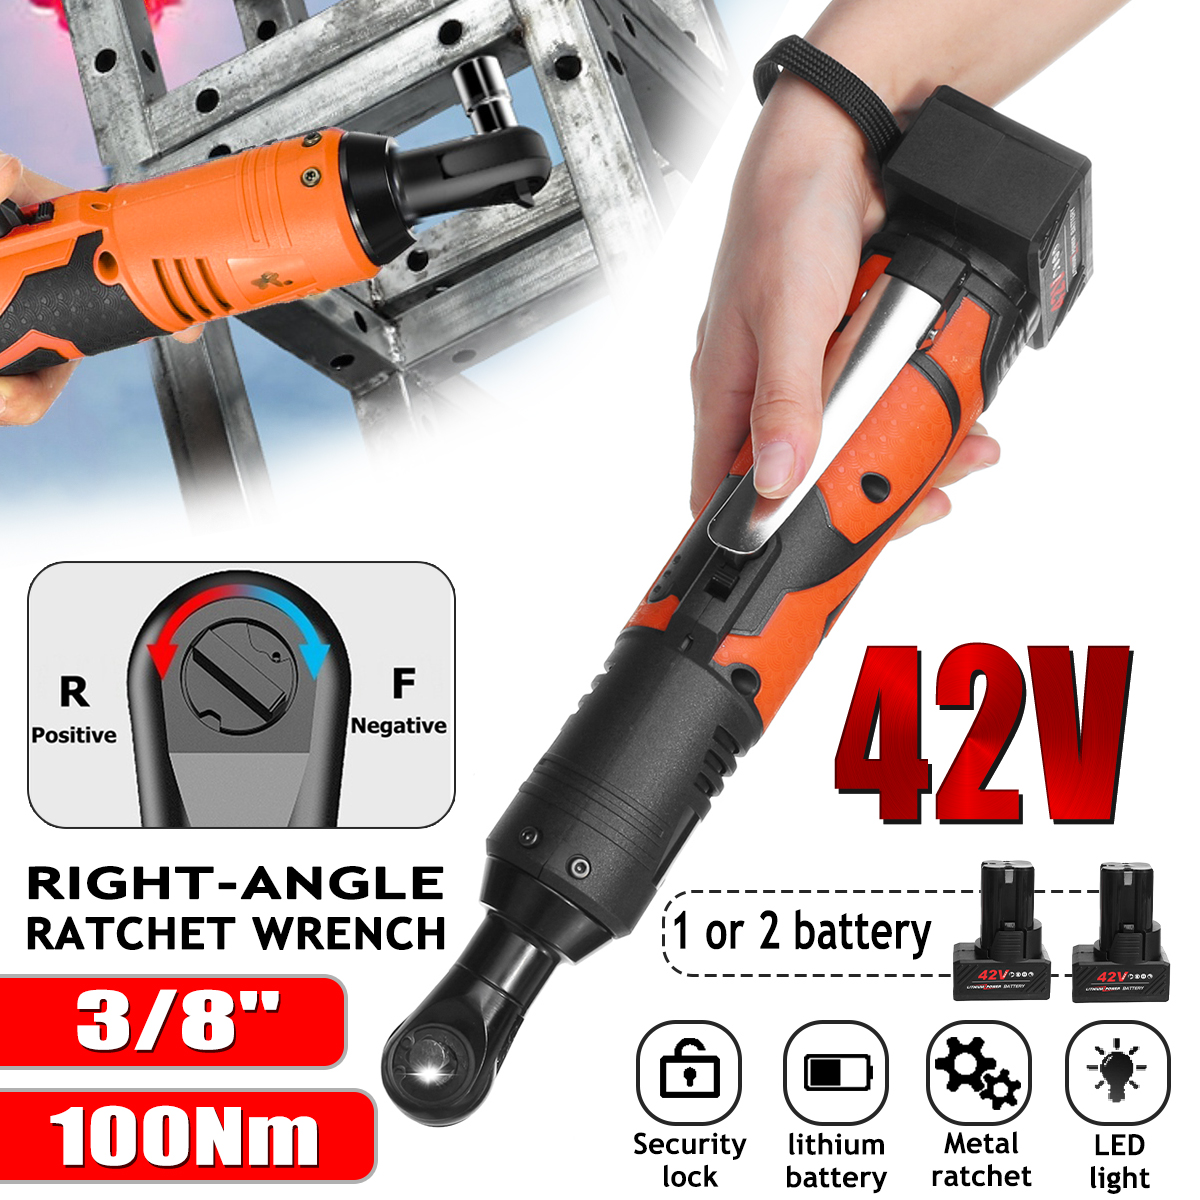 12V/42V Cordless Electric Ratchet Wrench 3/8 Angle Drill Screwdriver Scaffolding 100NM Rechargeable Spanner With 2 Battery